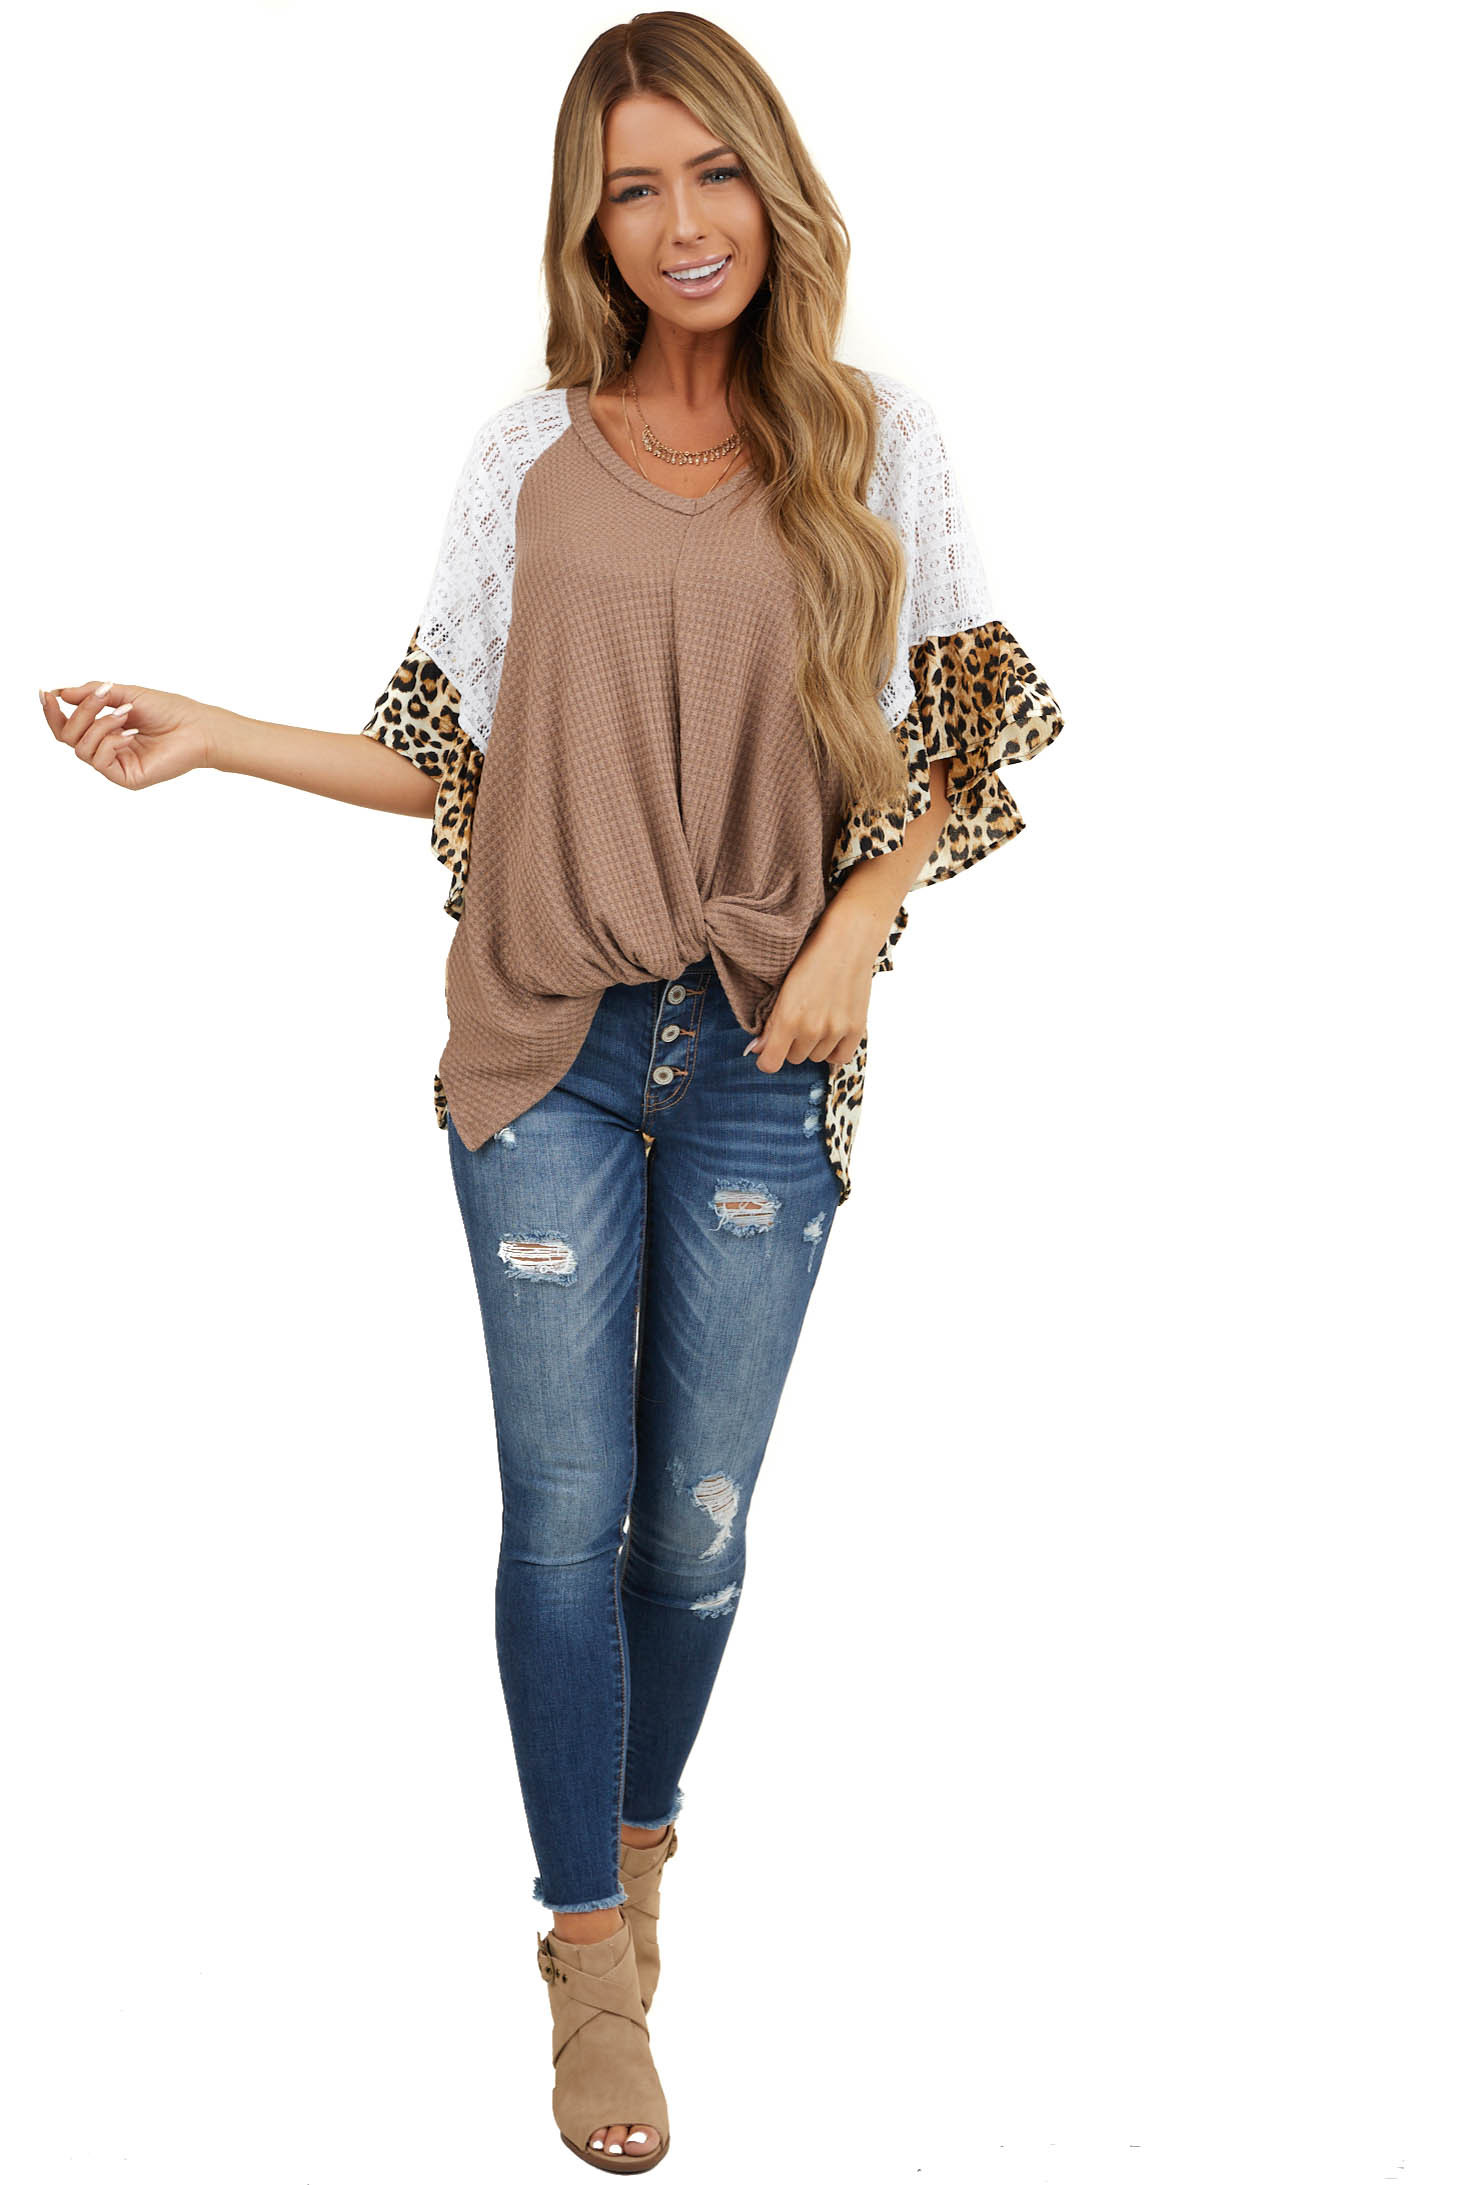 Mocha and Ivory Top with Leopard Print Contrast and Lace